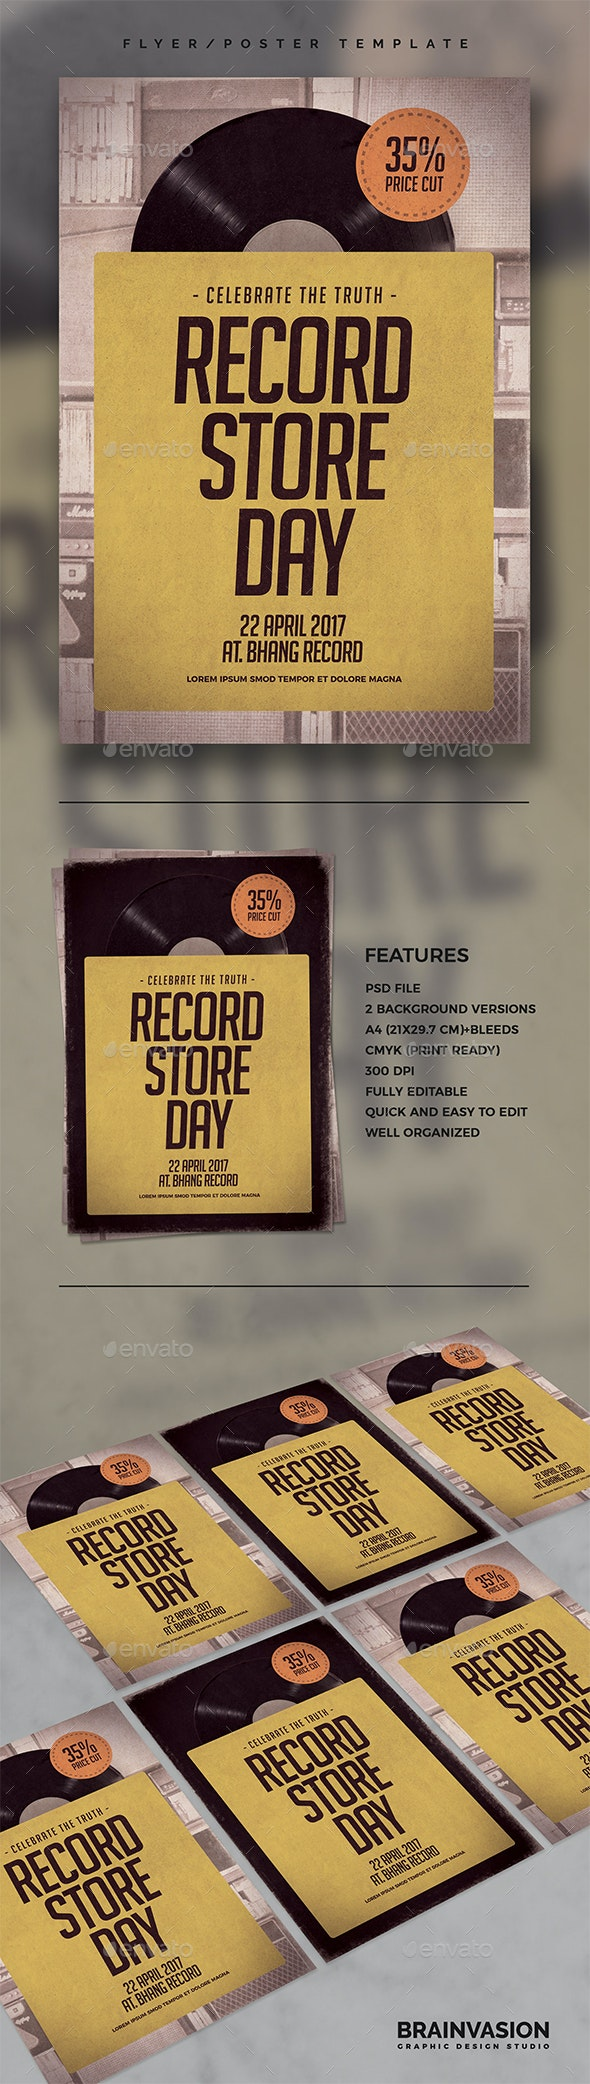 Record Store Day Flyer/Poster Template - Miscellaneous Events